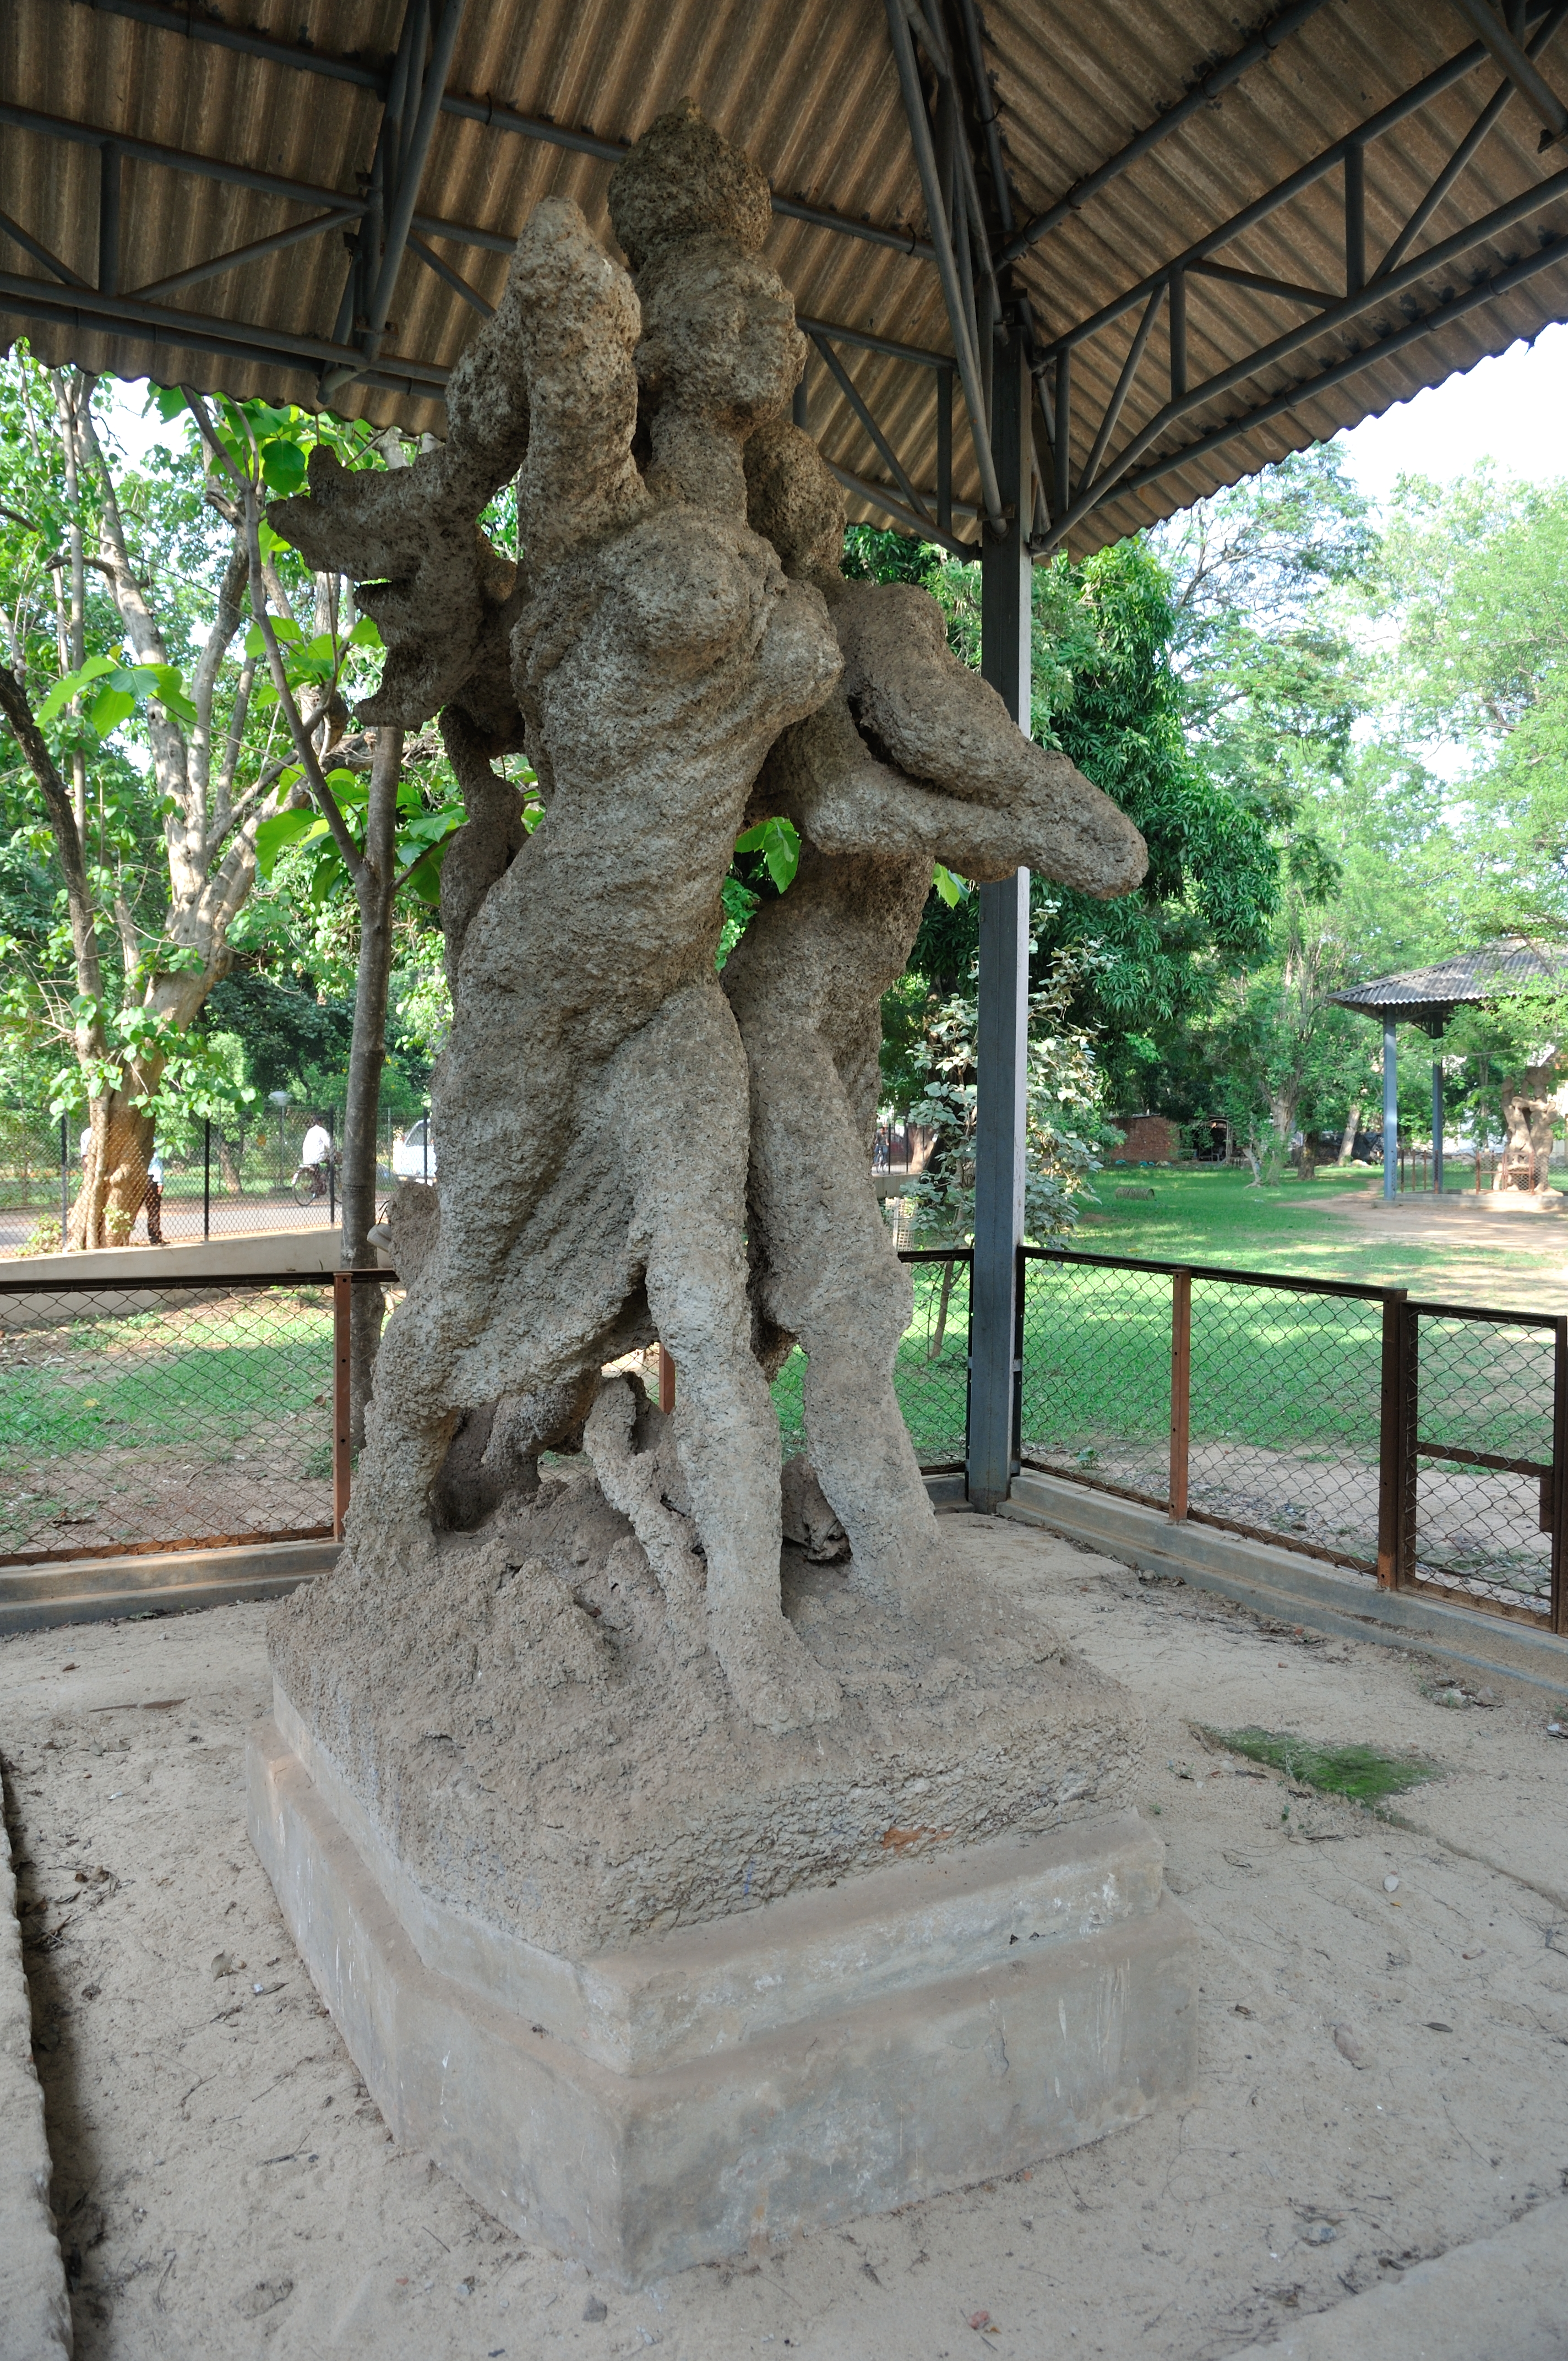 Baij's outdoor sculptures rise out of the ground, much like the termite mounds seen growing out of the red soil of Birbhum